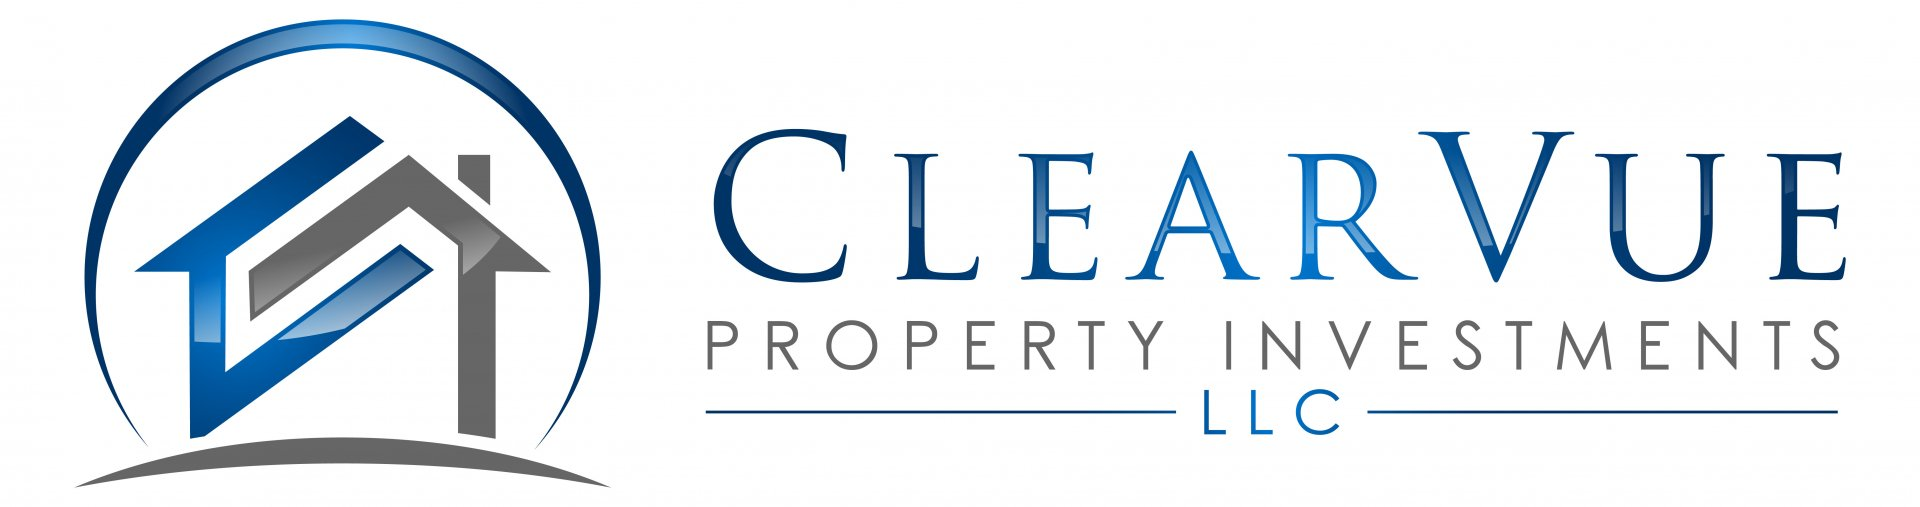 ClearVue Property Investments LLC  logo